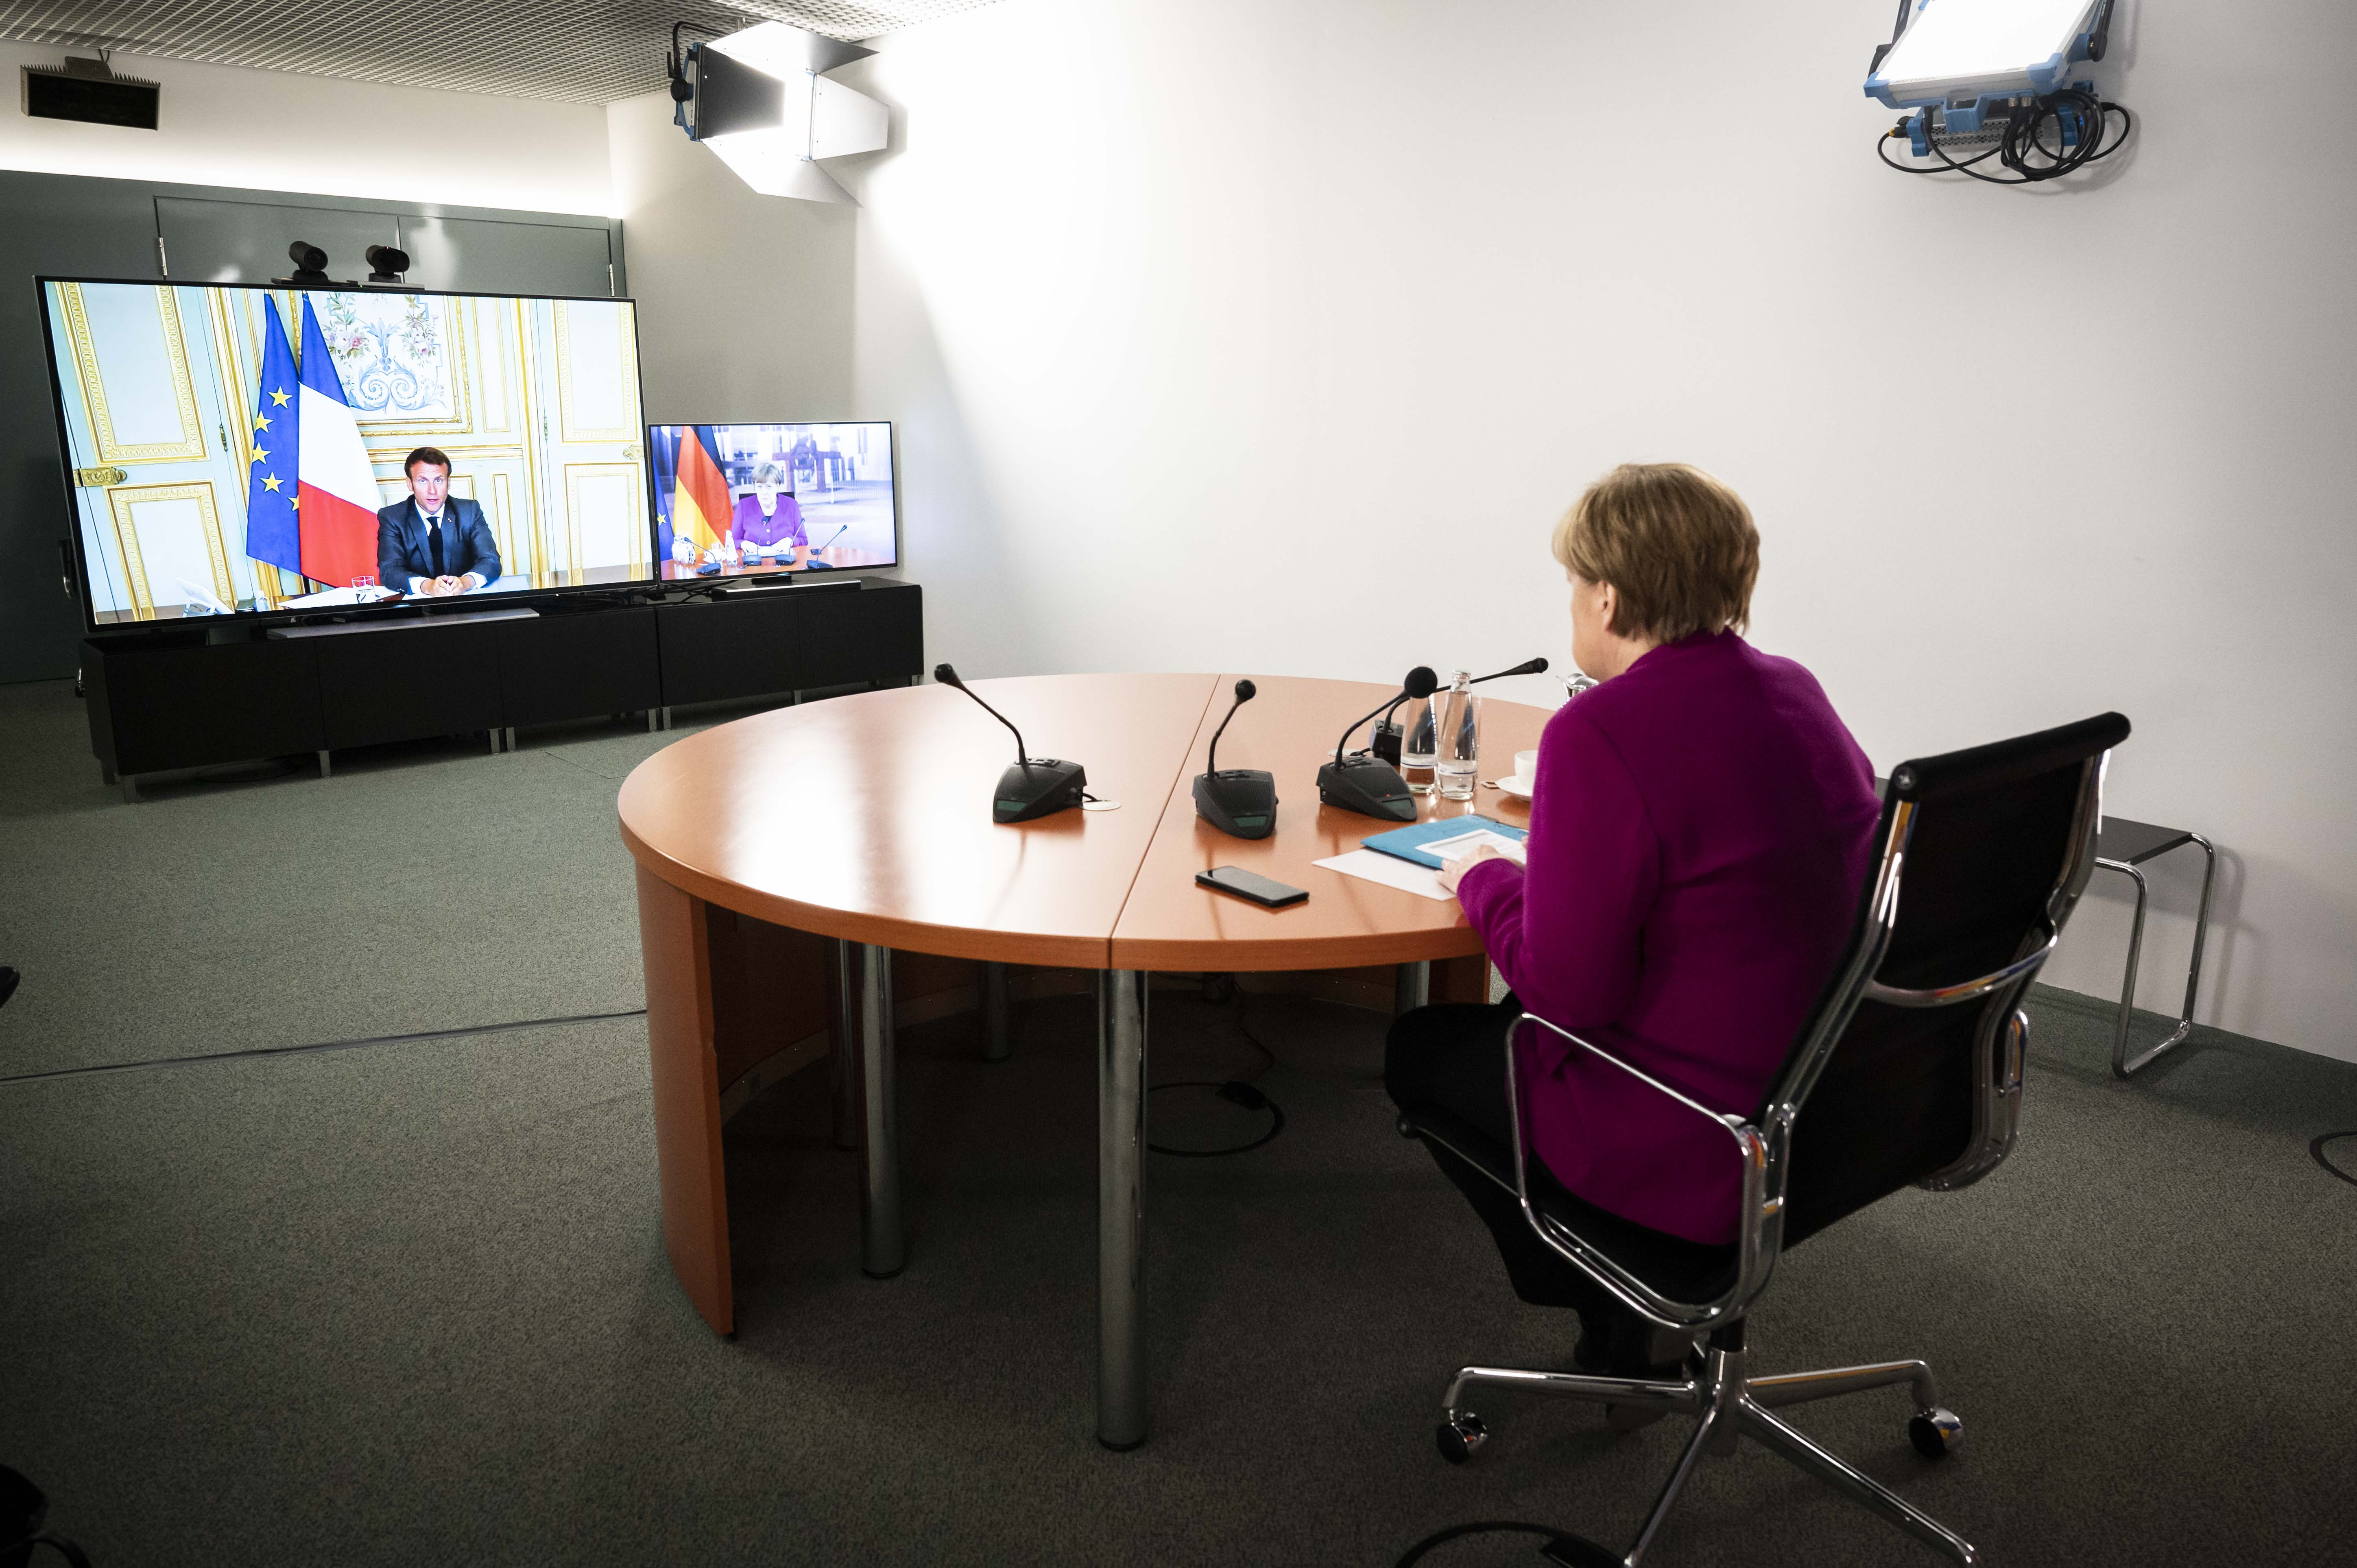 BERLIN, GERMANY - MAY 18, 2020:  In this handout photo provided by the German Government Press Office (BPA), German Chancellor Angela Merkel is seen during a video conference with French President Emmanuel Macron at the Chancellor's Office on May 18, 2020 in Berlin, Germany. (Photo by Sandra Steins/Bundesregierung via Getty Images)